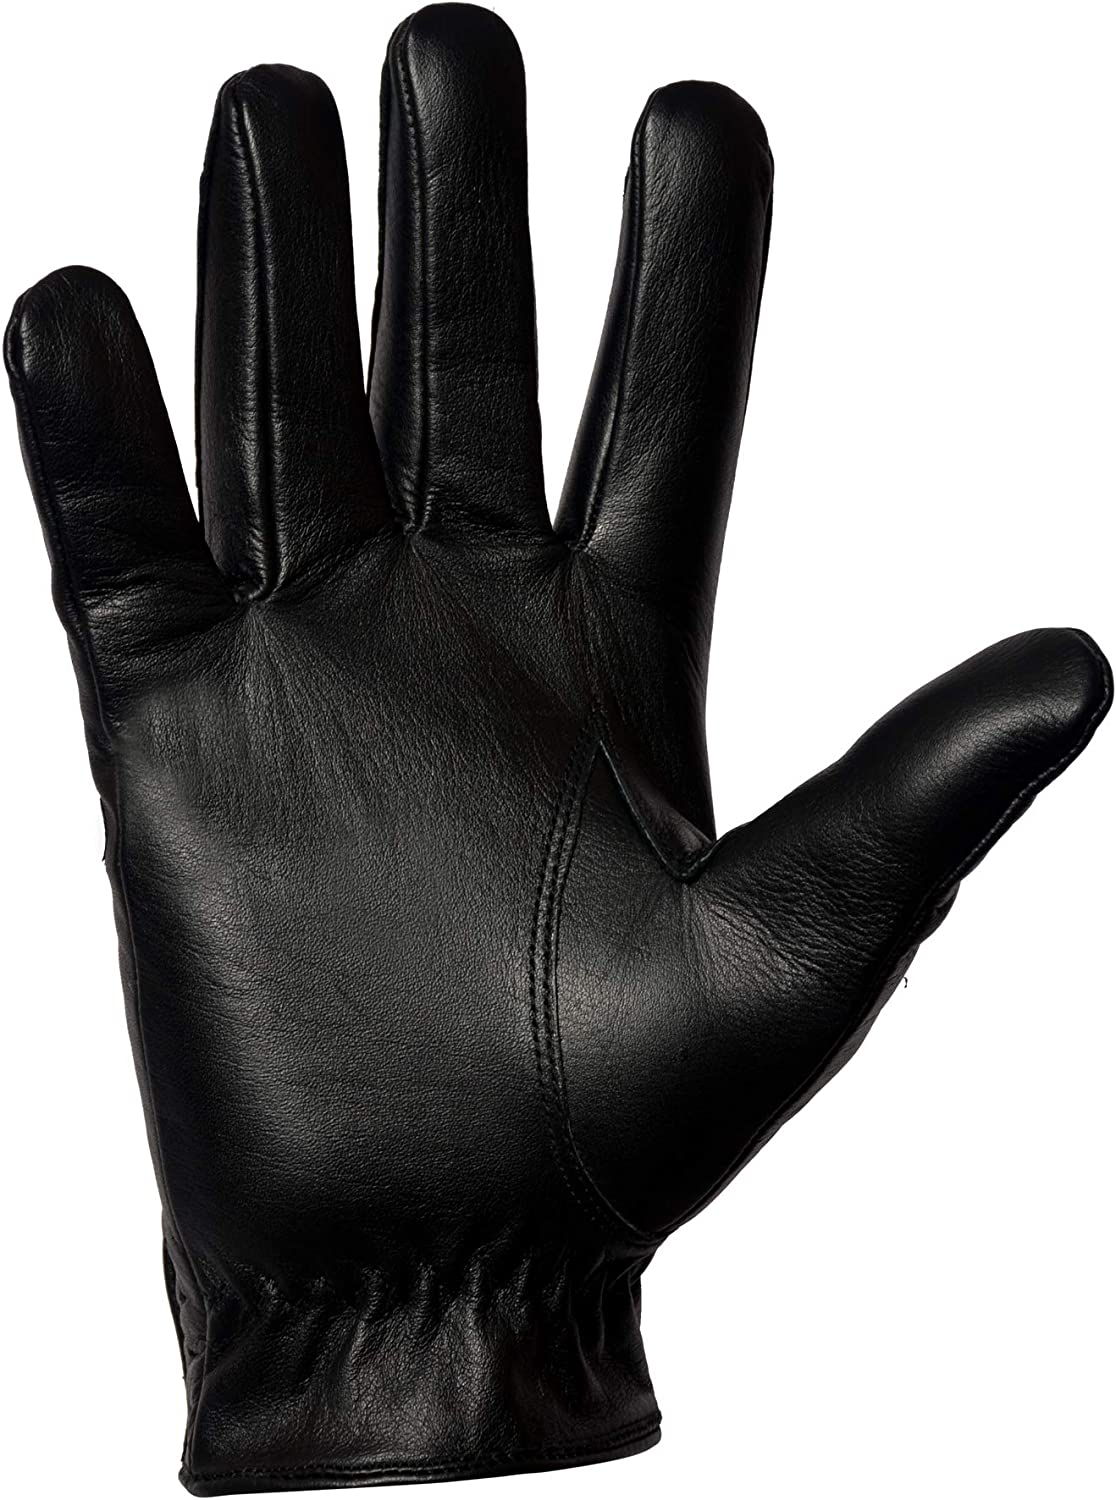 Hand Fellow Mens Leathter chauffeur Vintage Retro Style Without Lining Driving Gloves